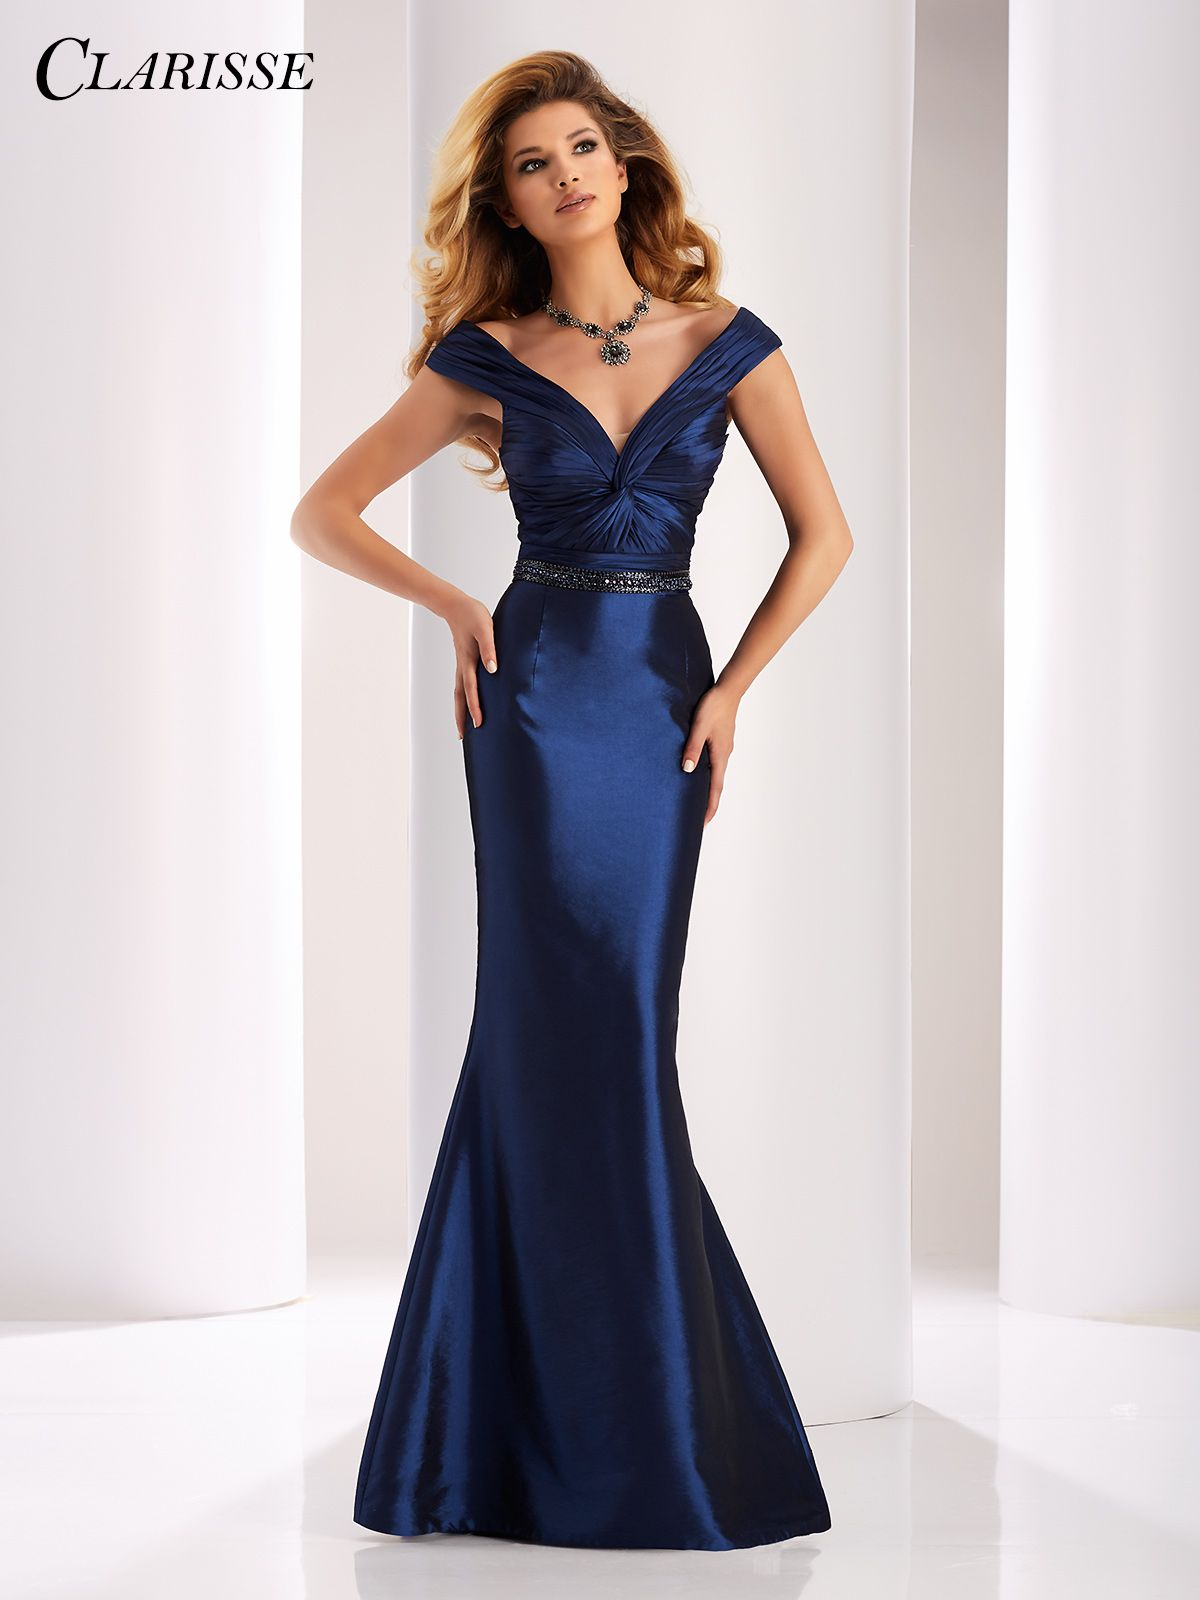 Clarisse Formal Gown 4862 with Detachable Train | PLUS SIZE PROM ...